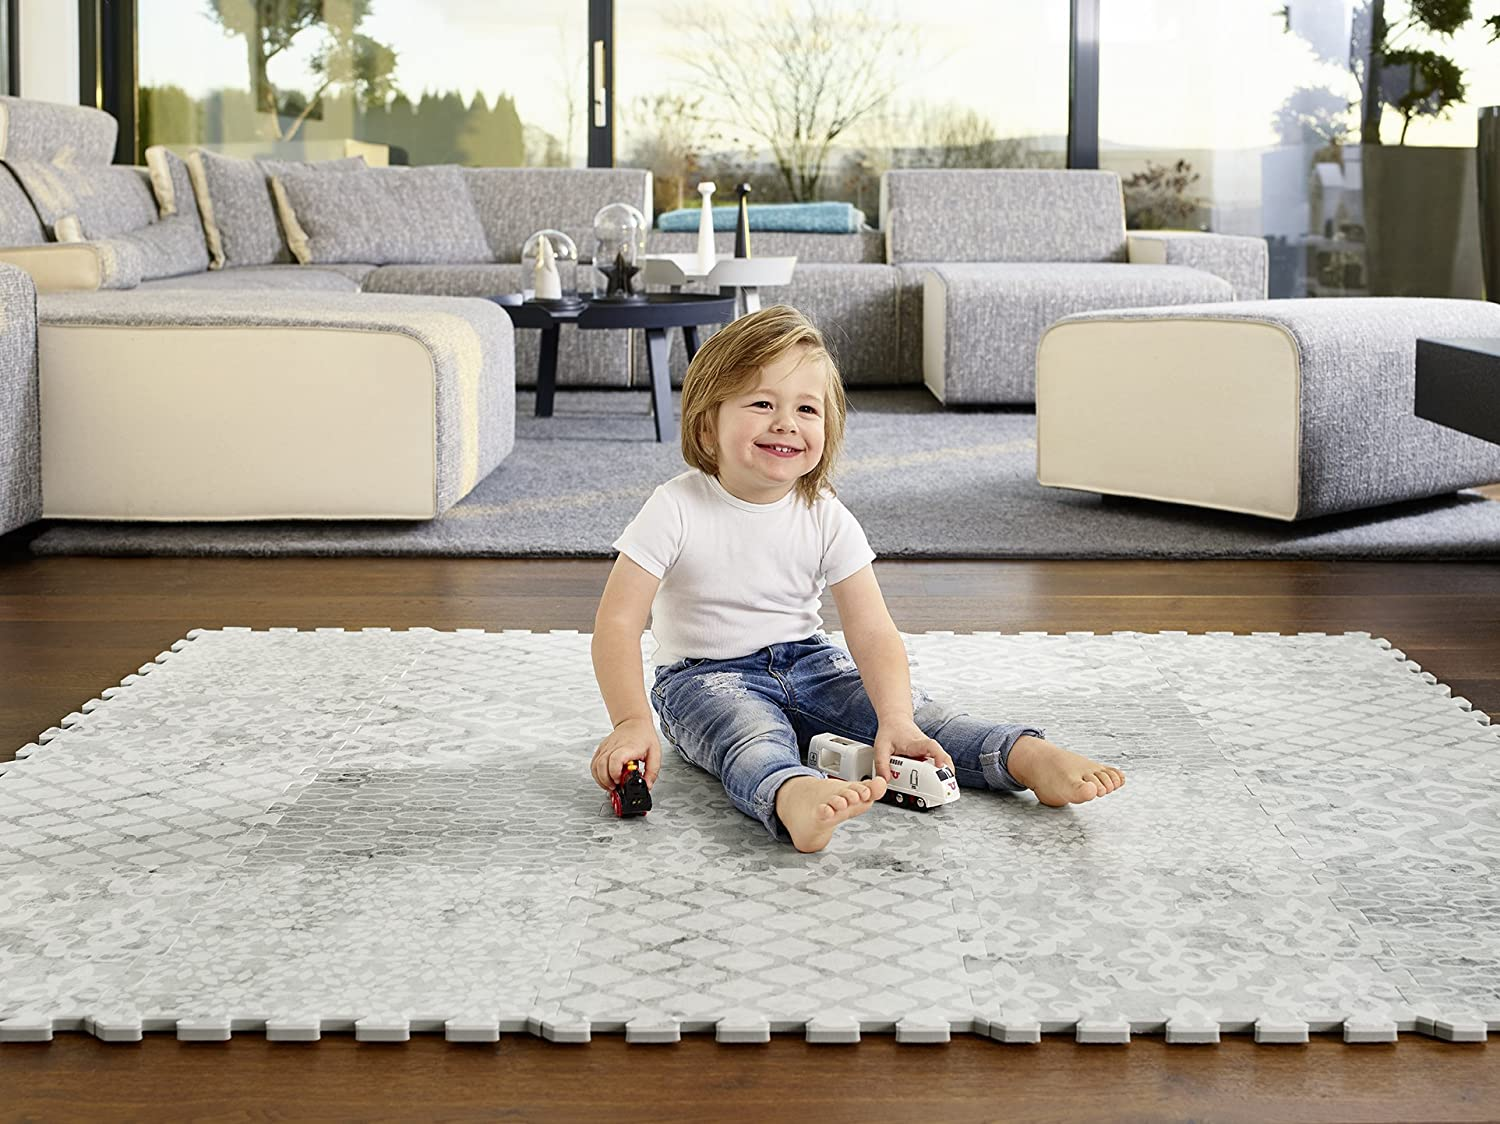 Baby's Best Products Lux Series Extra-Thick, Non-Toxic Play Mat Baby's Best Products